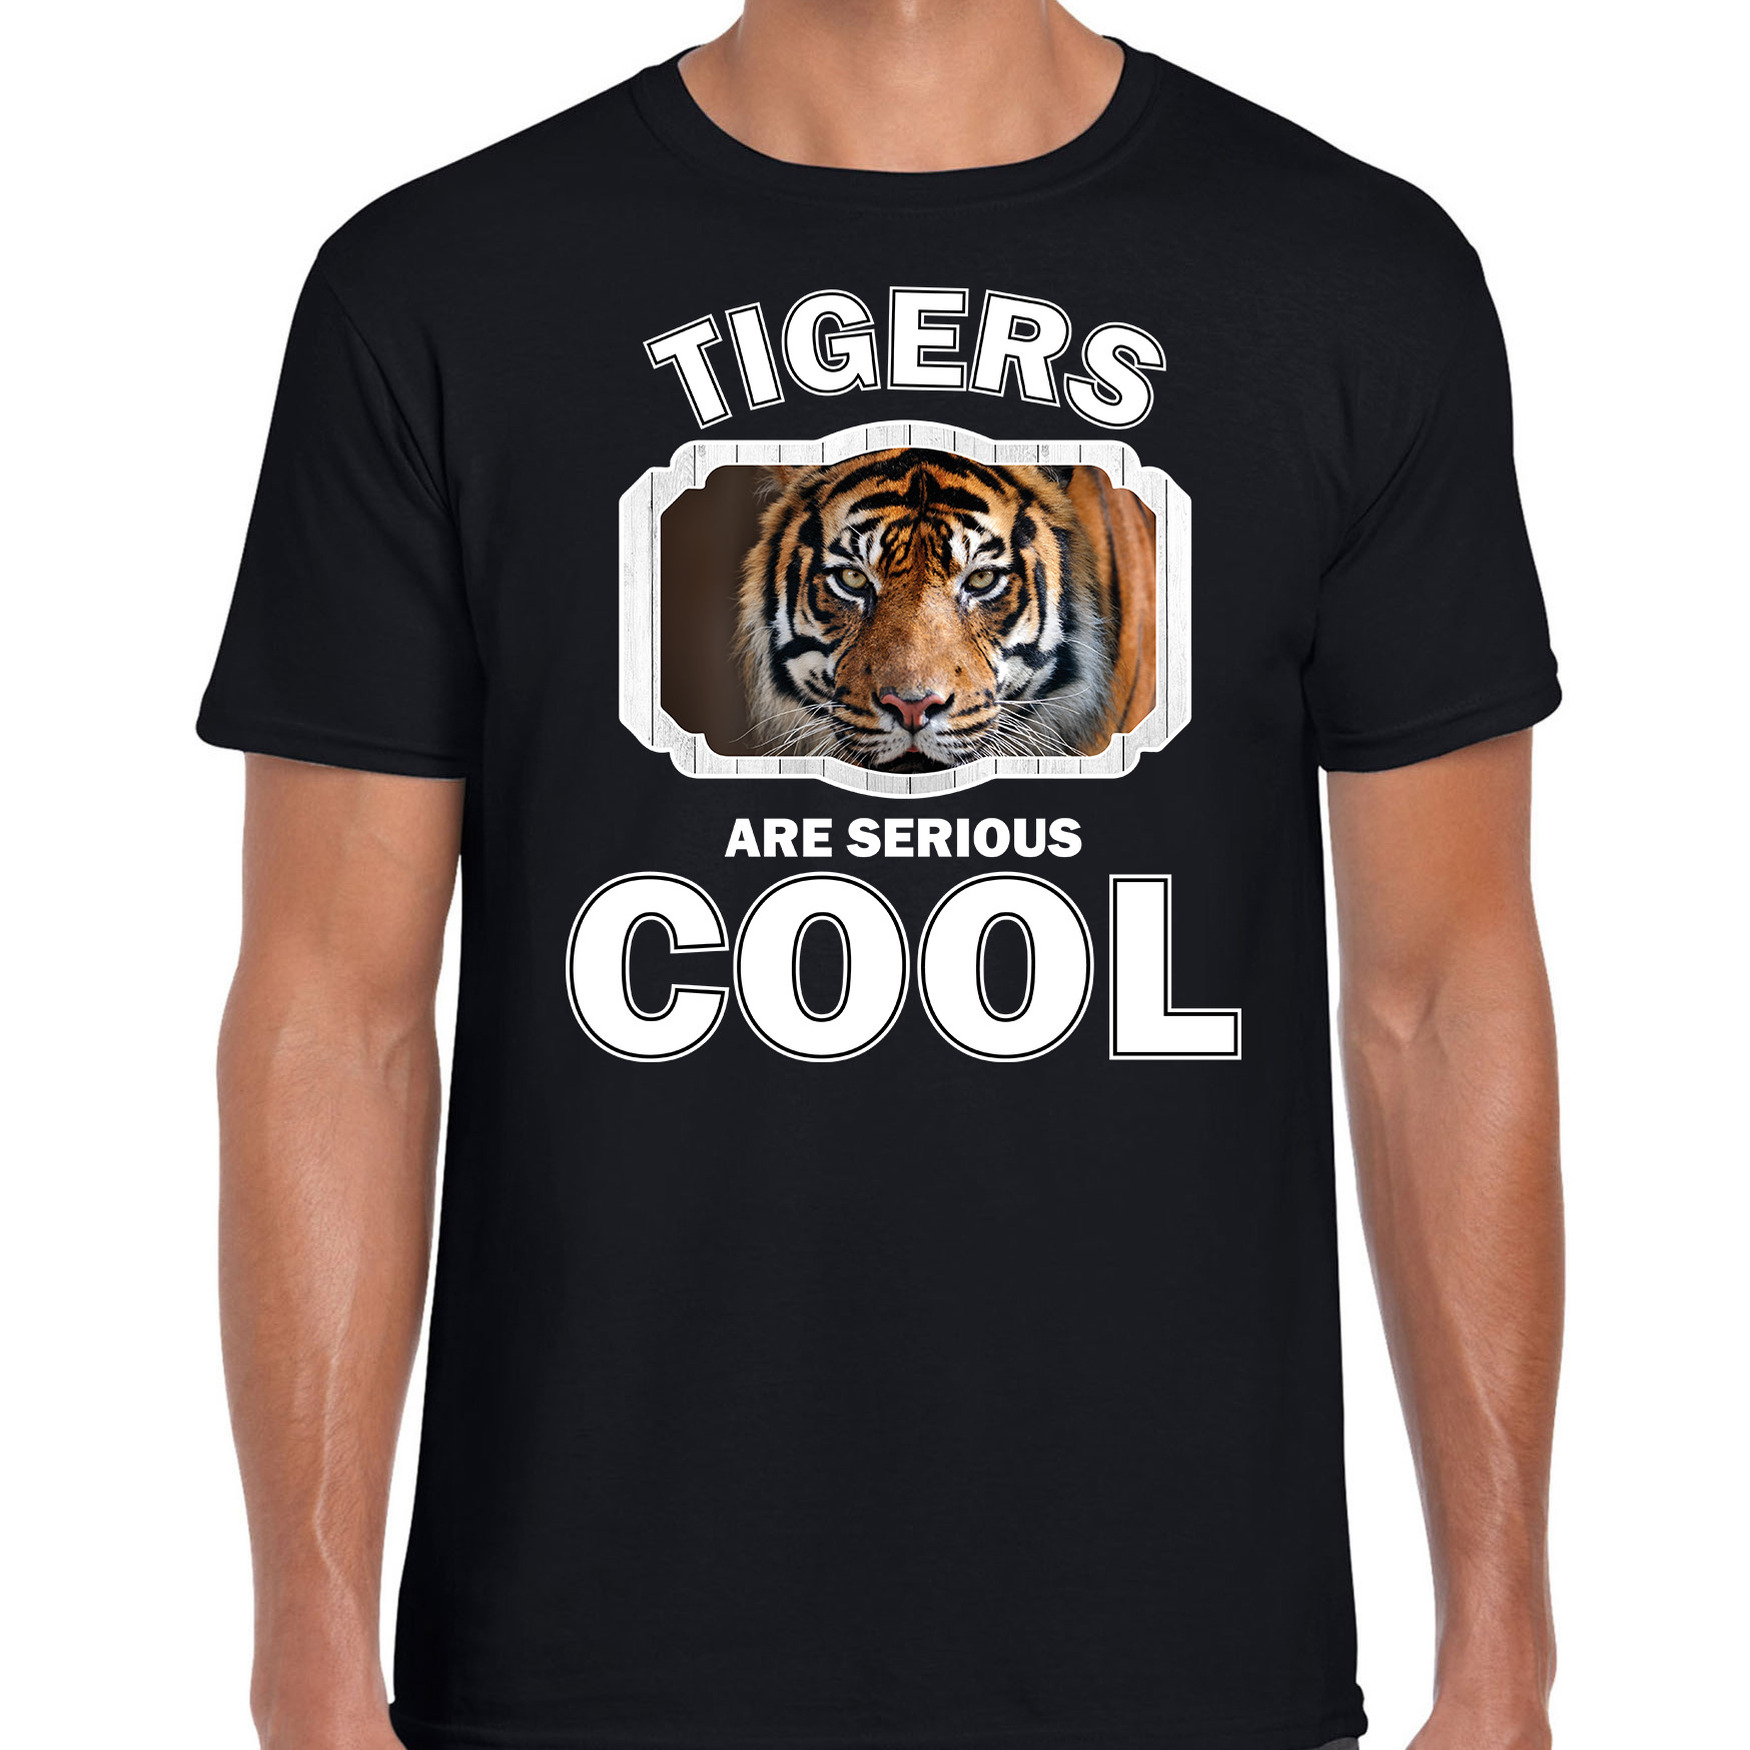 T-shirt tigers are serious cool zwart heren - tijgers/ tijger shirt